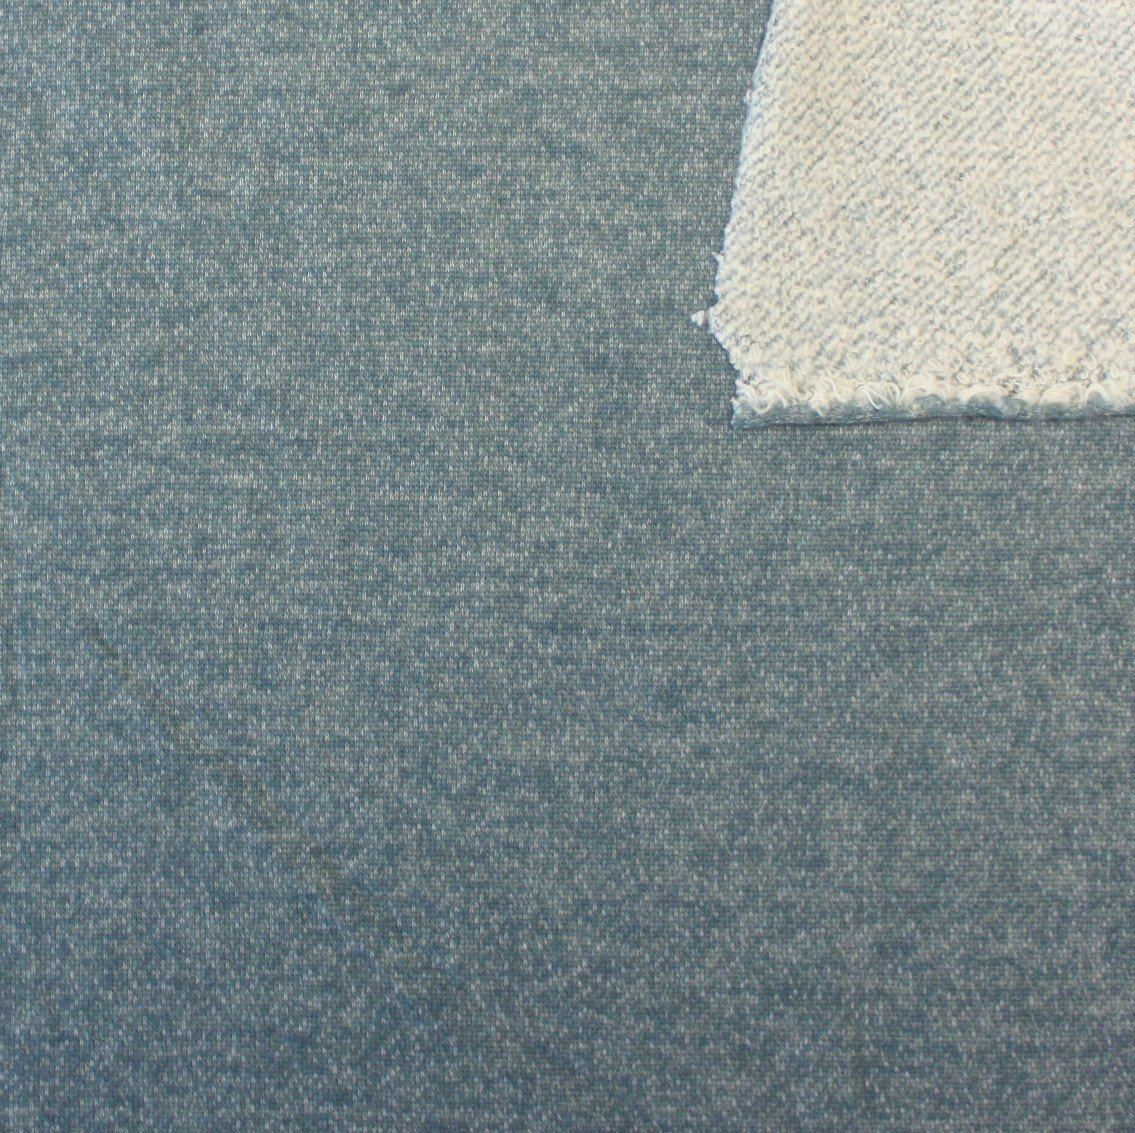 Dusty Teal Blue Brushed Heathered French Terry Knit Fabric, 1 Yard